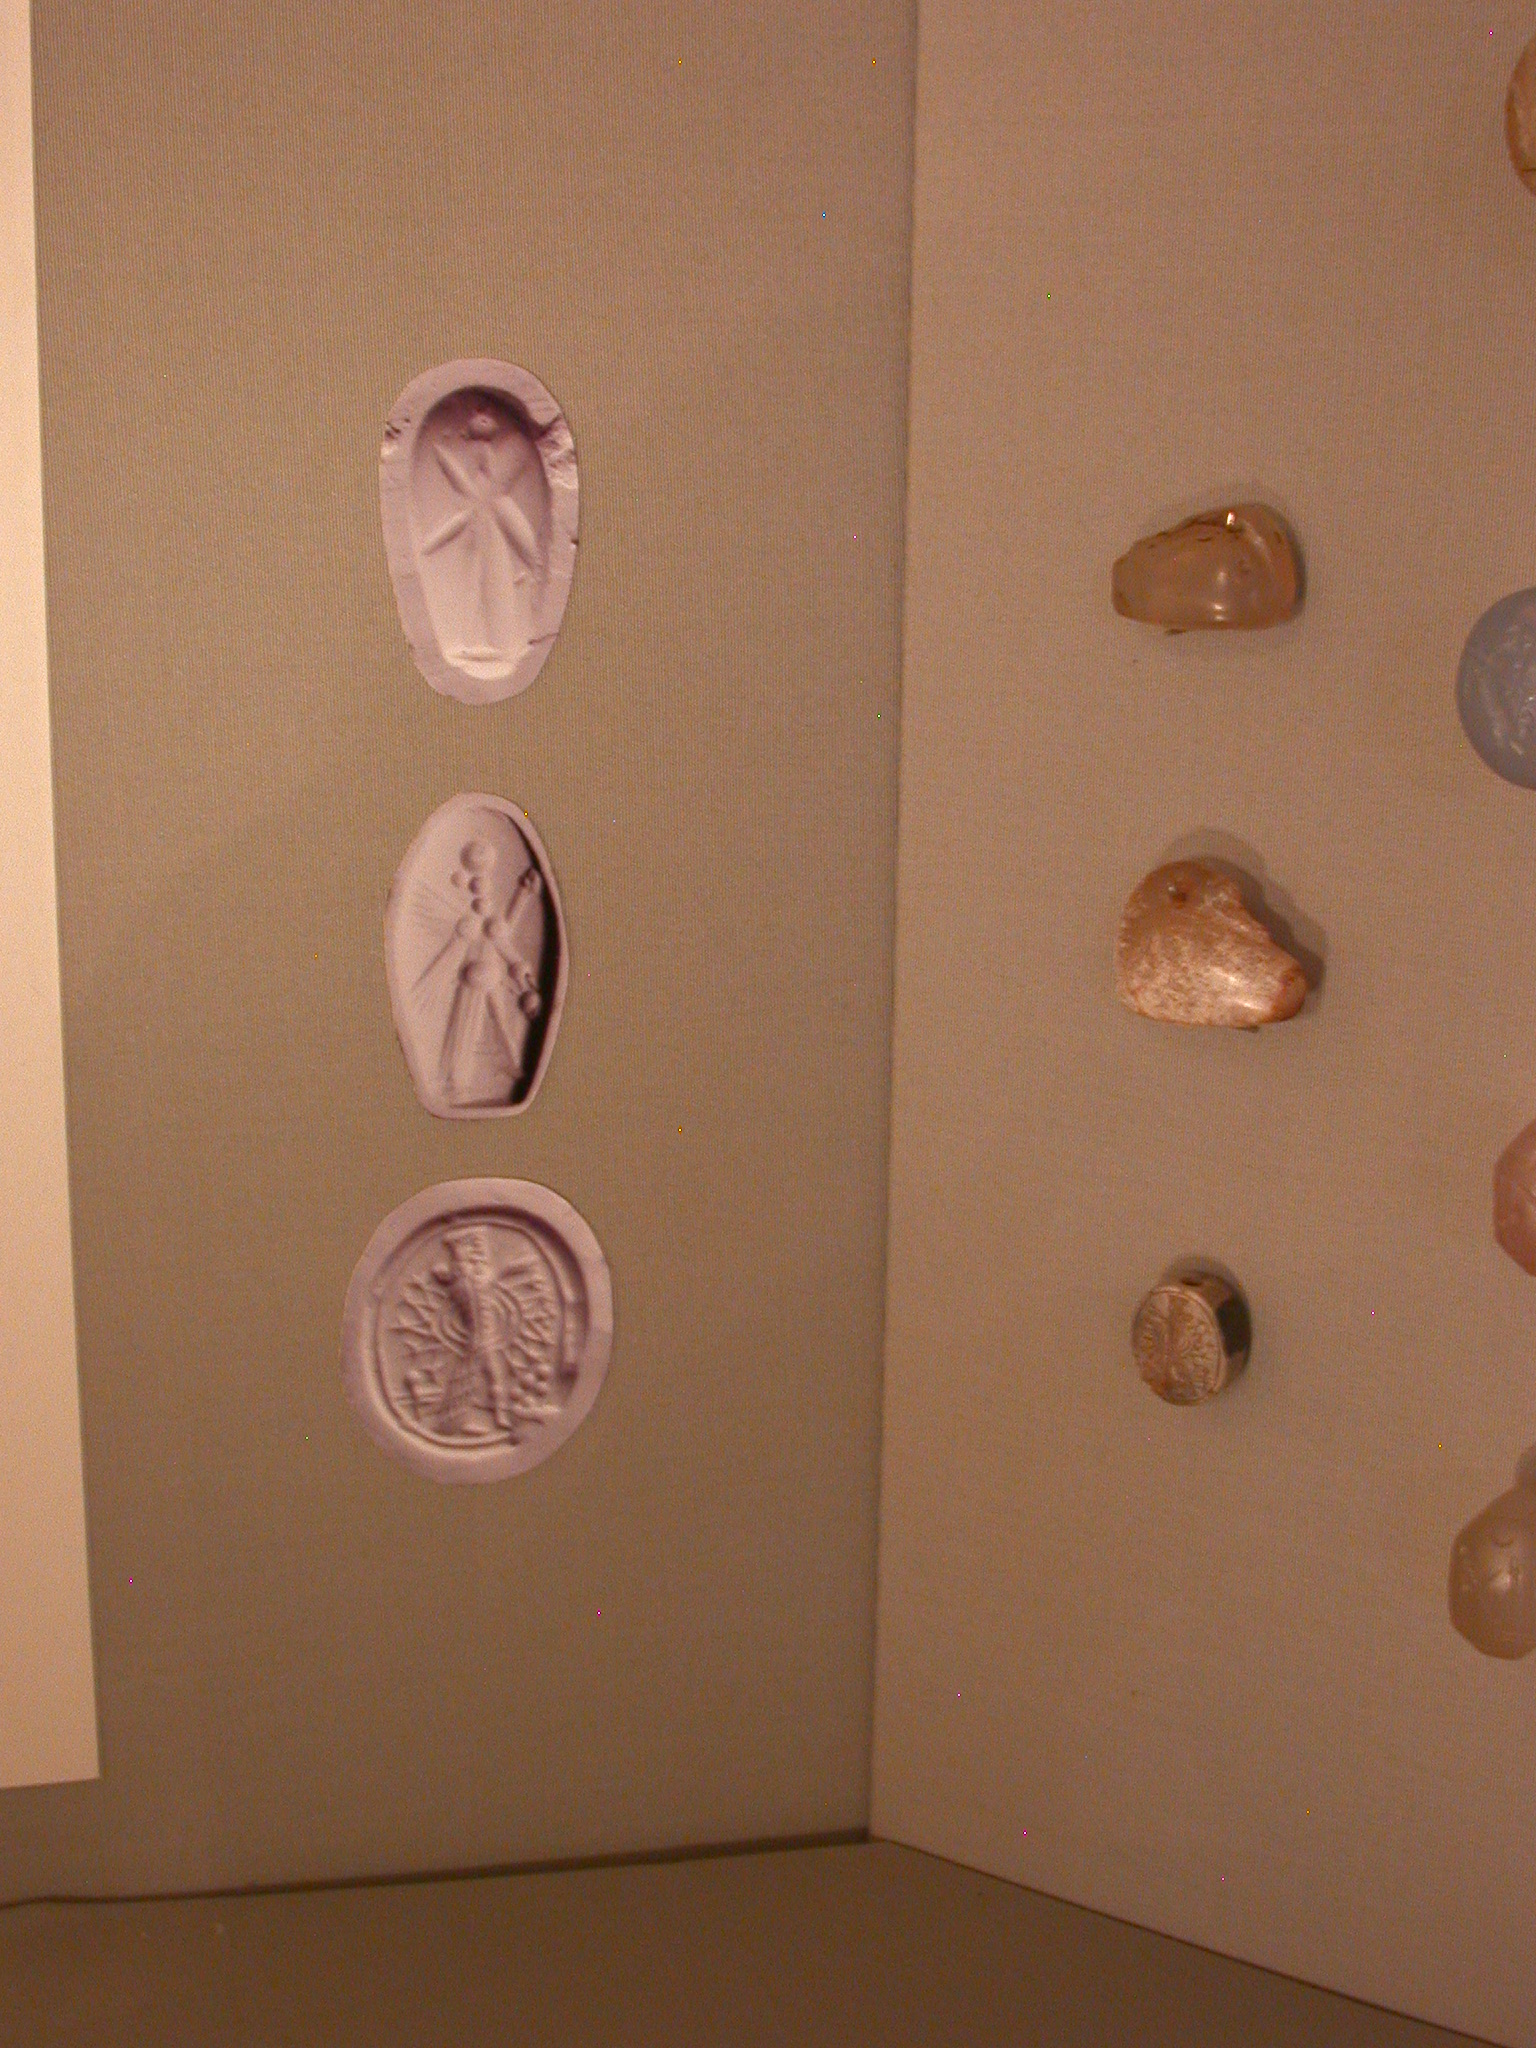 Neo-Assyrian Stamp Seals, About 950-600 BCE, in Fitzwilliam Museum, Cambridge, England